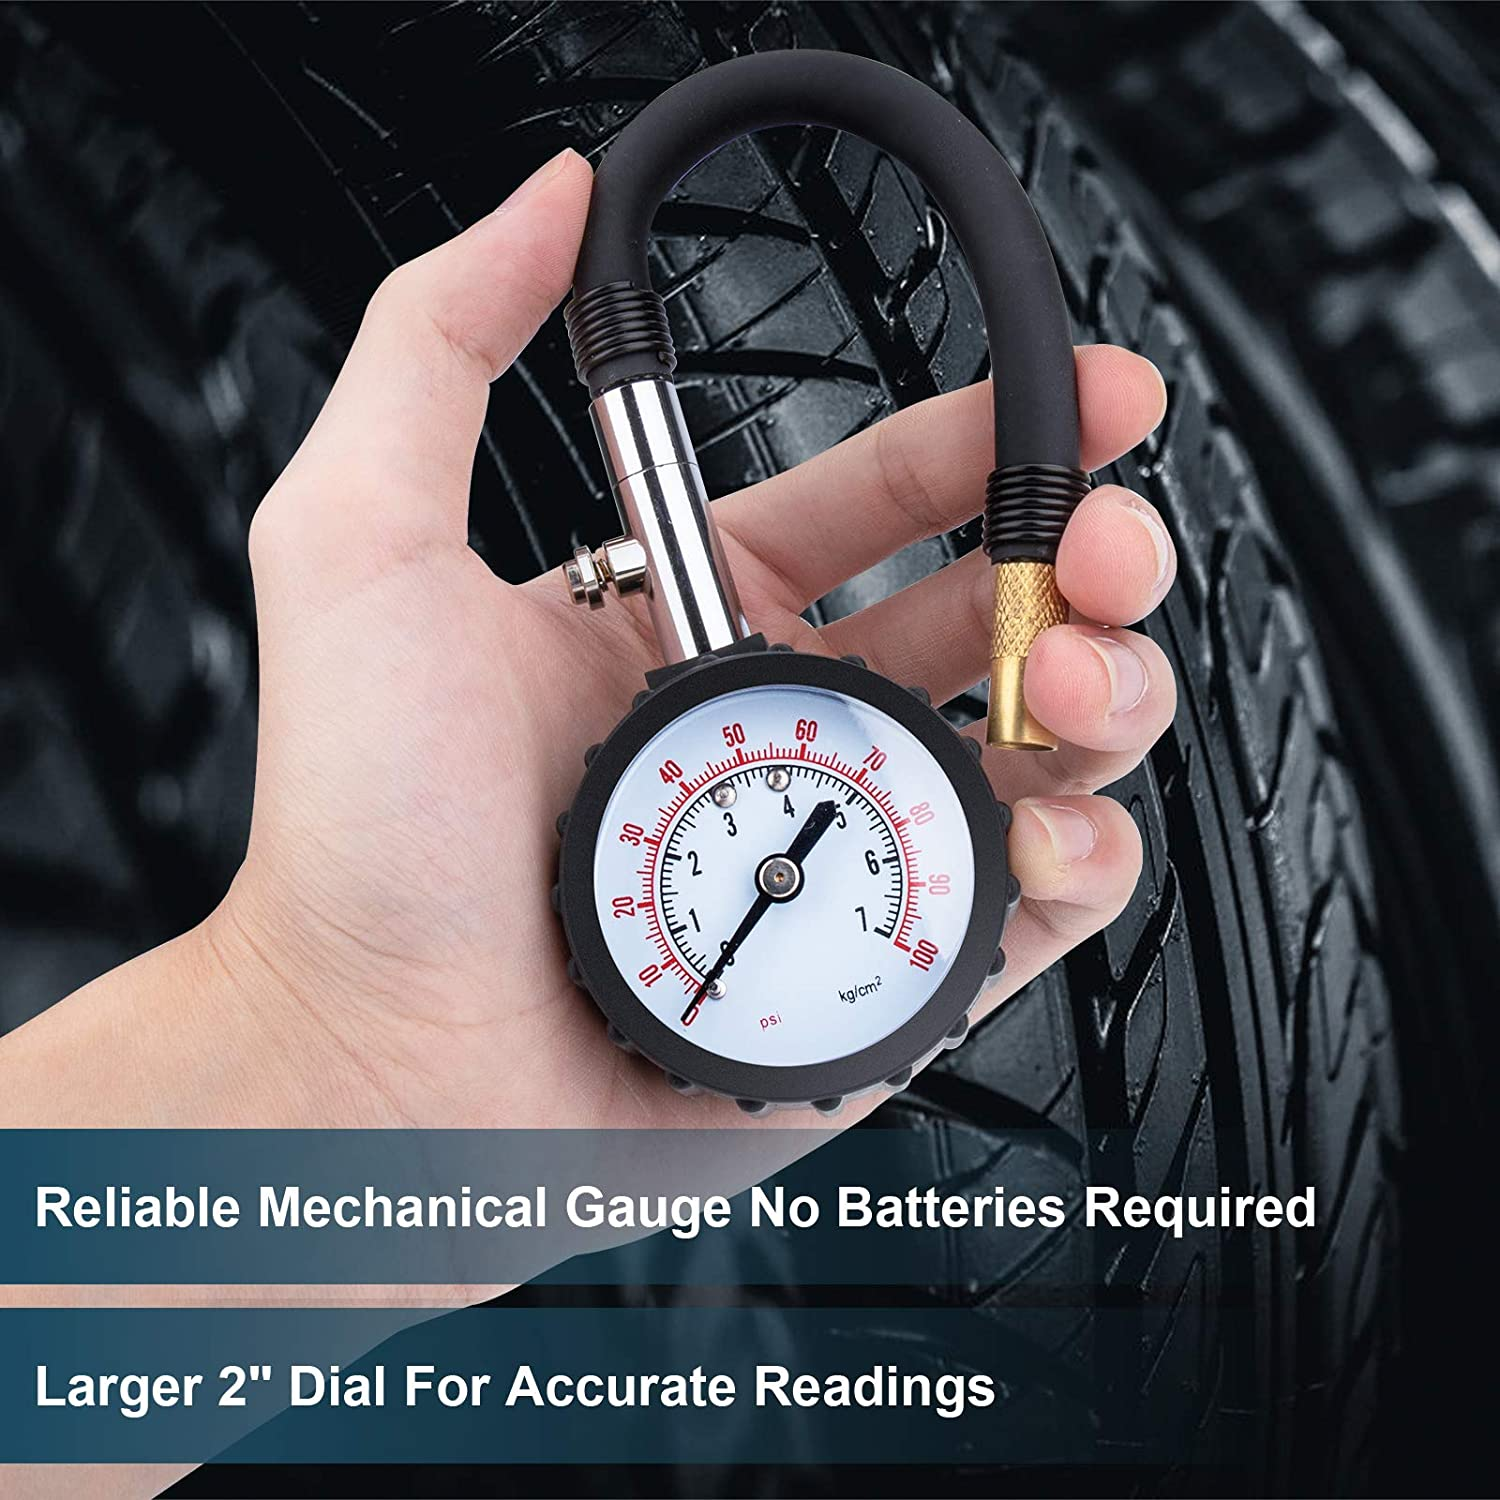 Deflator Air Pressure Gauge with Rubber Hose for Motorcycle//Car//RV//Truck Tires Heavy Duty Accurate Air Pressure Tire Gauge Zoe sunny 100PSI Tire Pressure Gauge air Pressure Gauge